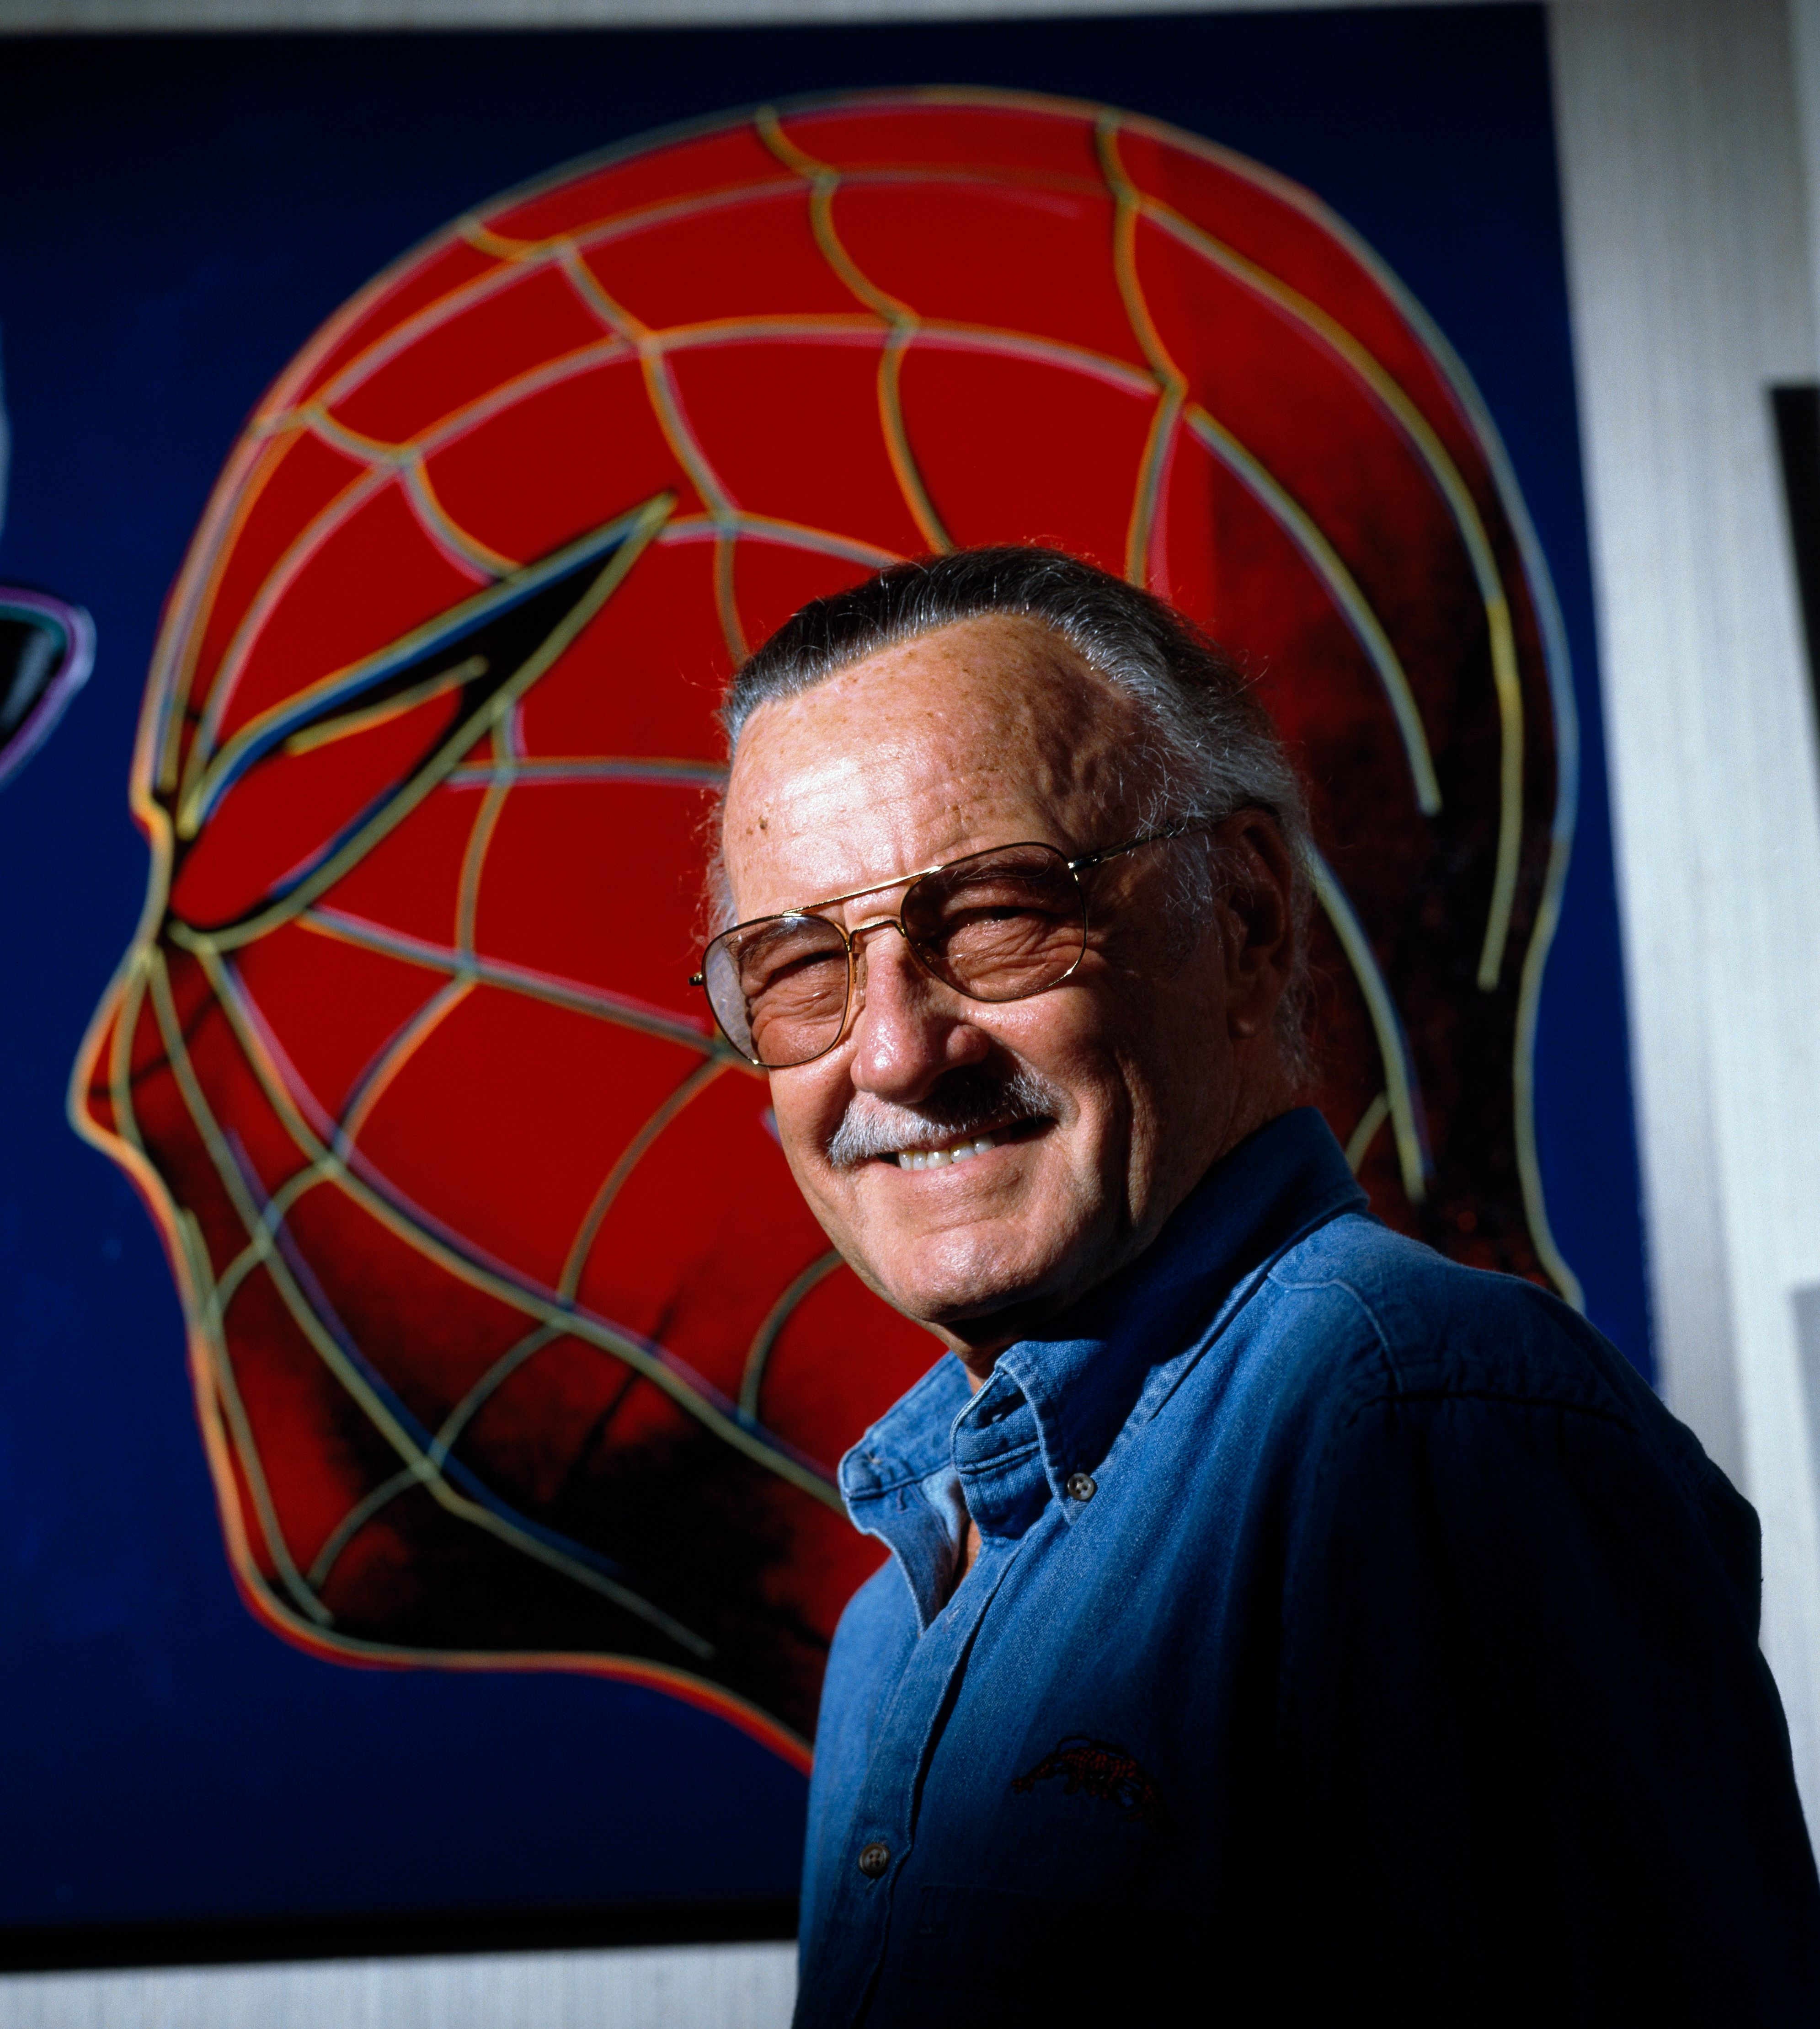 huffingtonpost.com - Andy McDonald - Stan Lee, Pioneer Of The Marvel Universe, Dead At Age 95